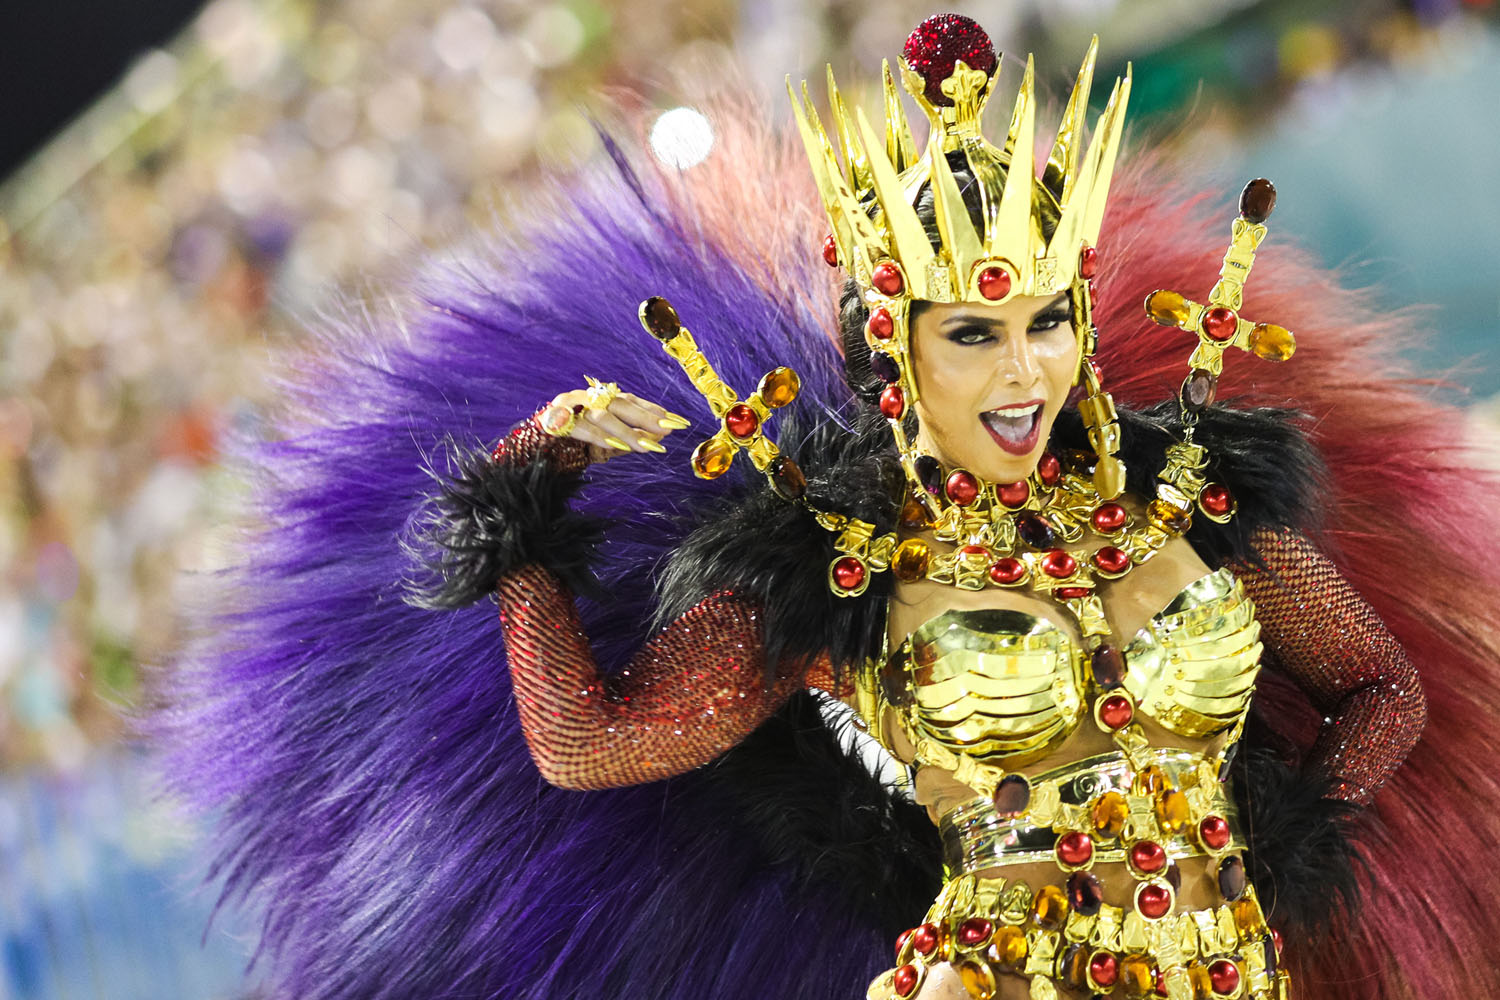 Insiders Guide to the Rio Carnival